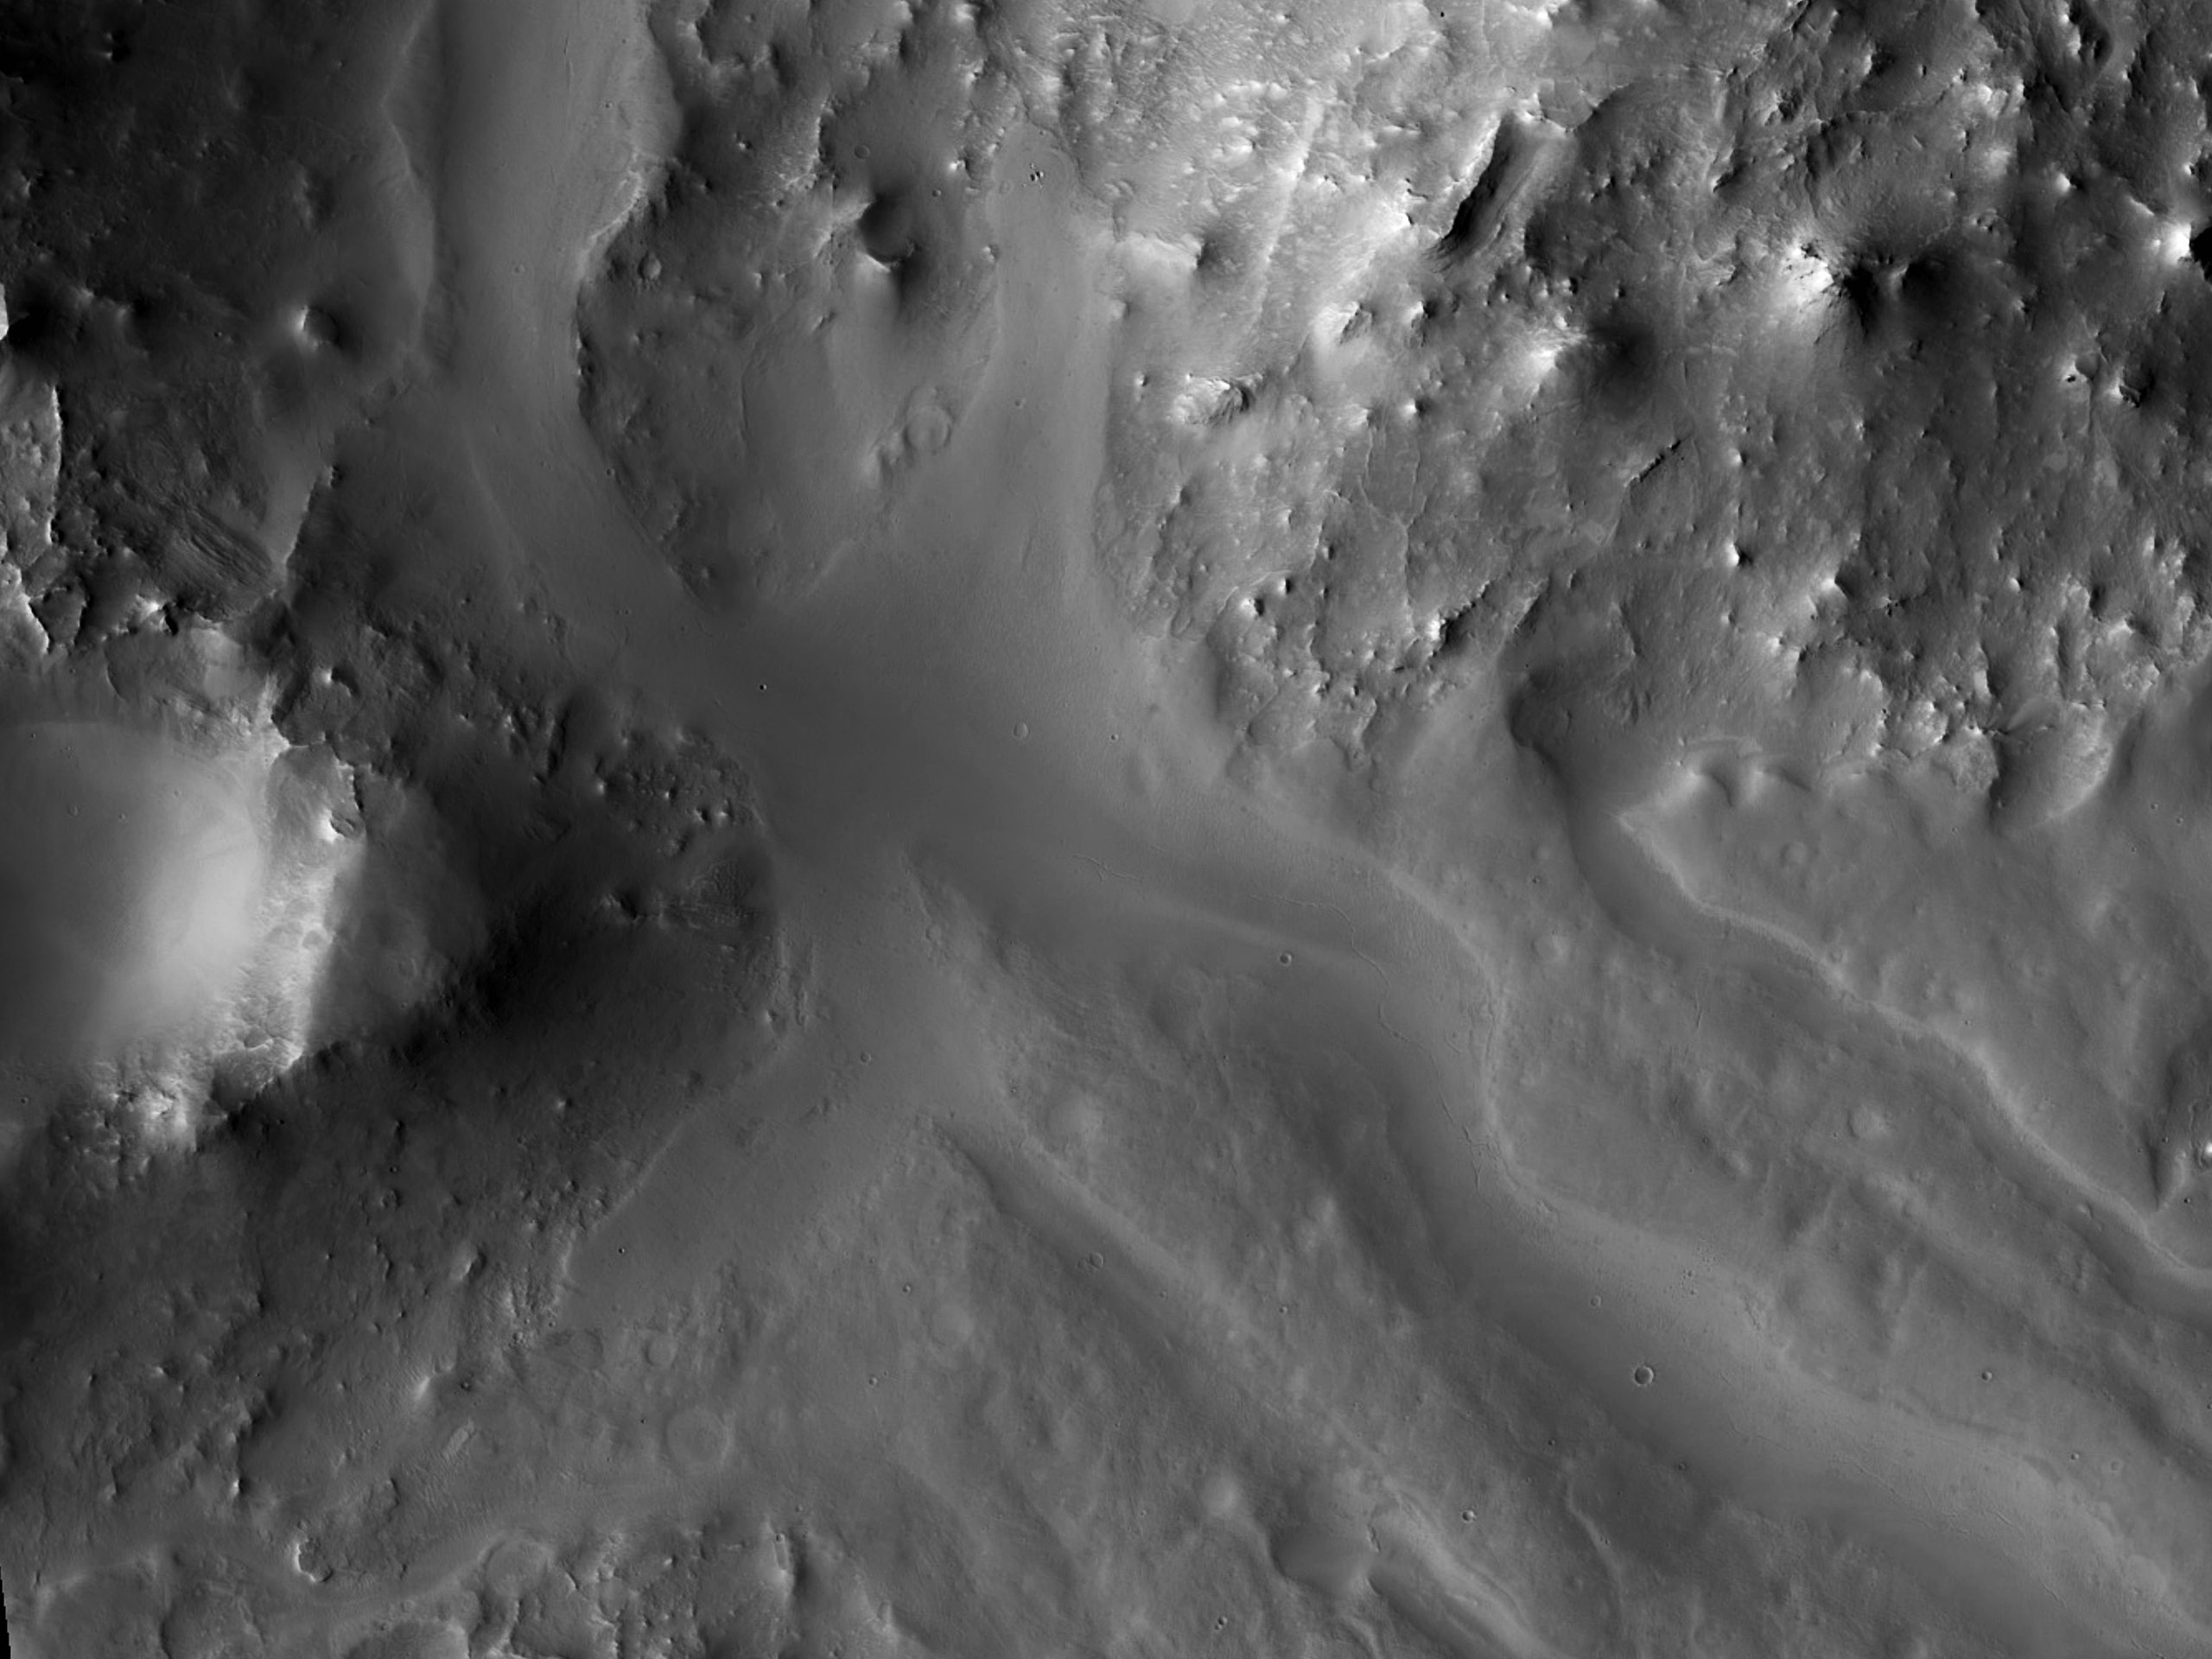 Channels in Baldet Crater